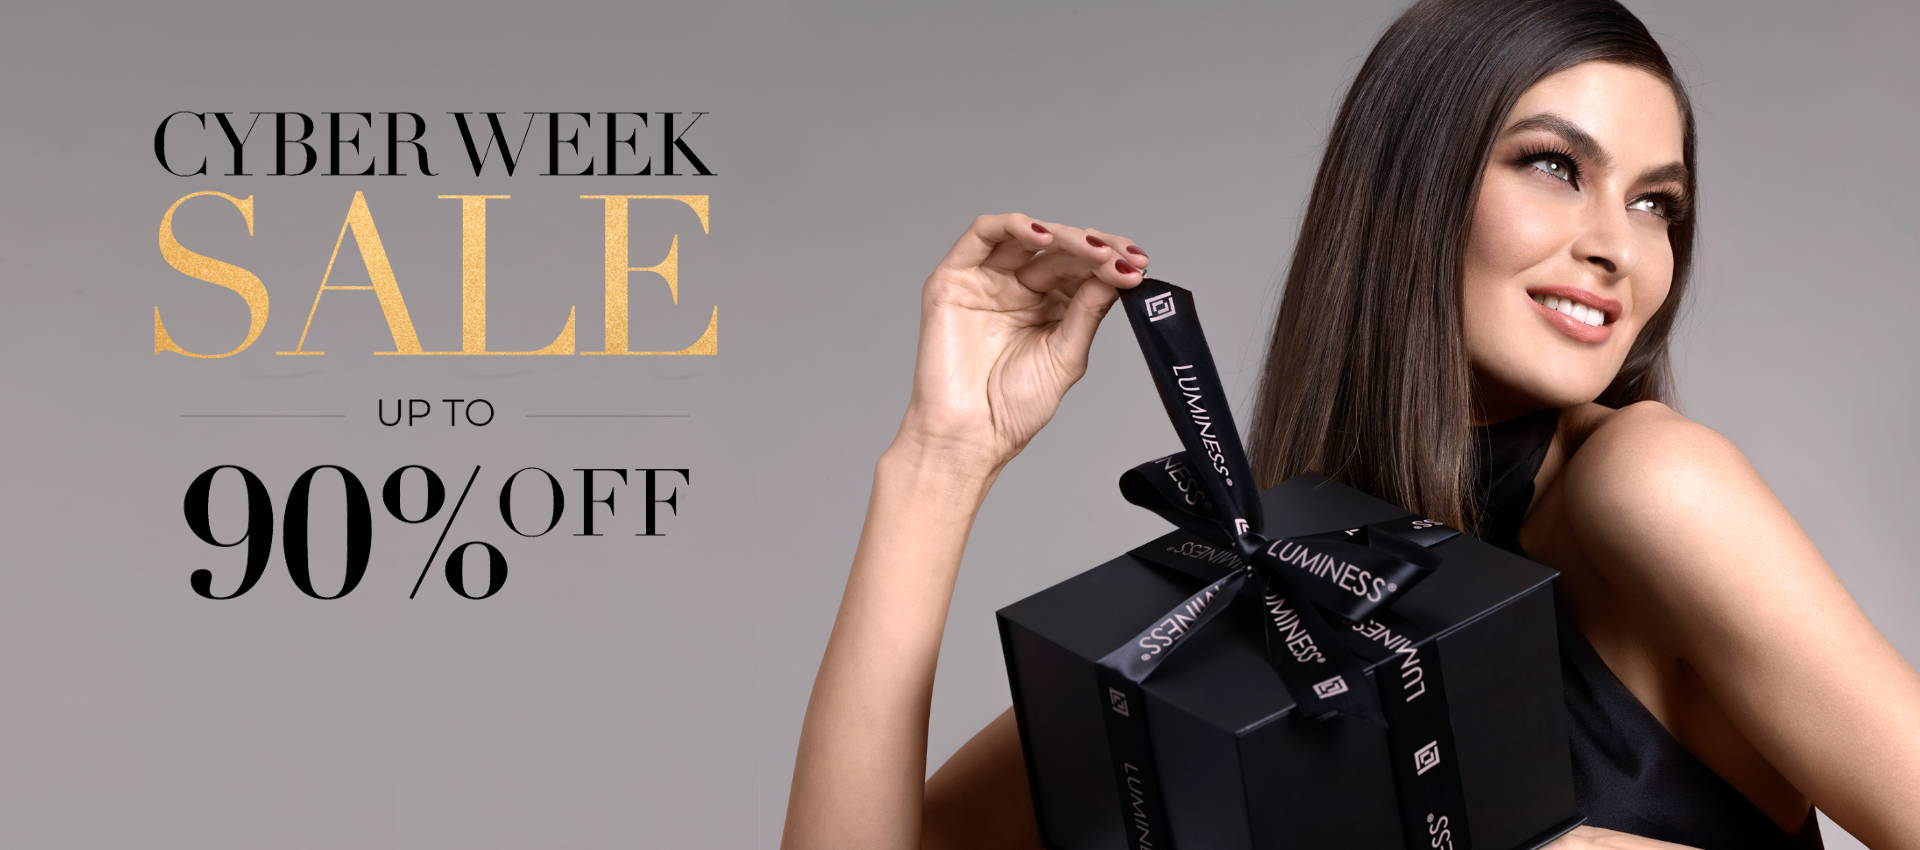 Cyber Week SALE up to 90% OFF